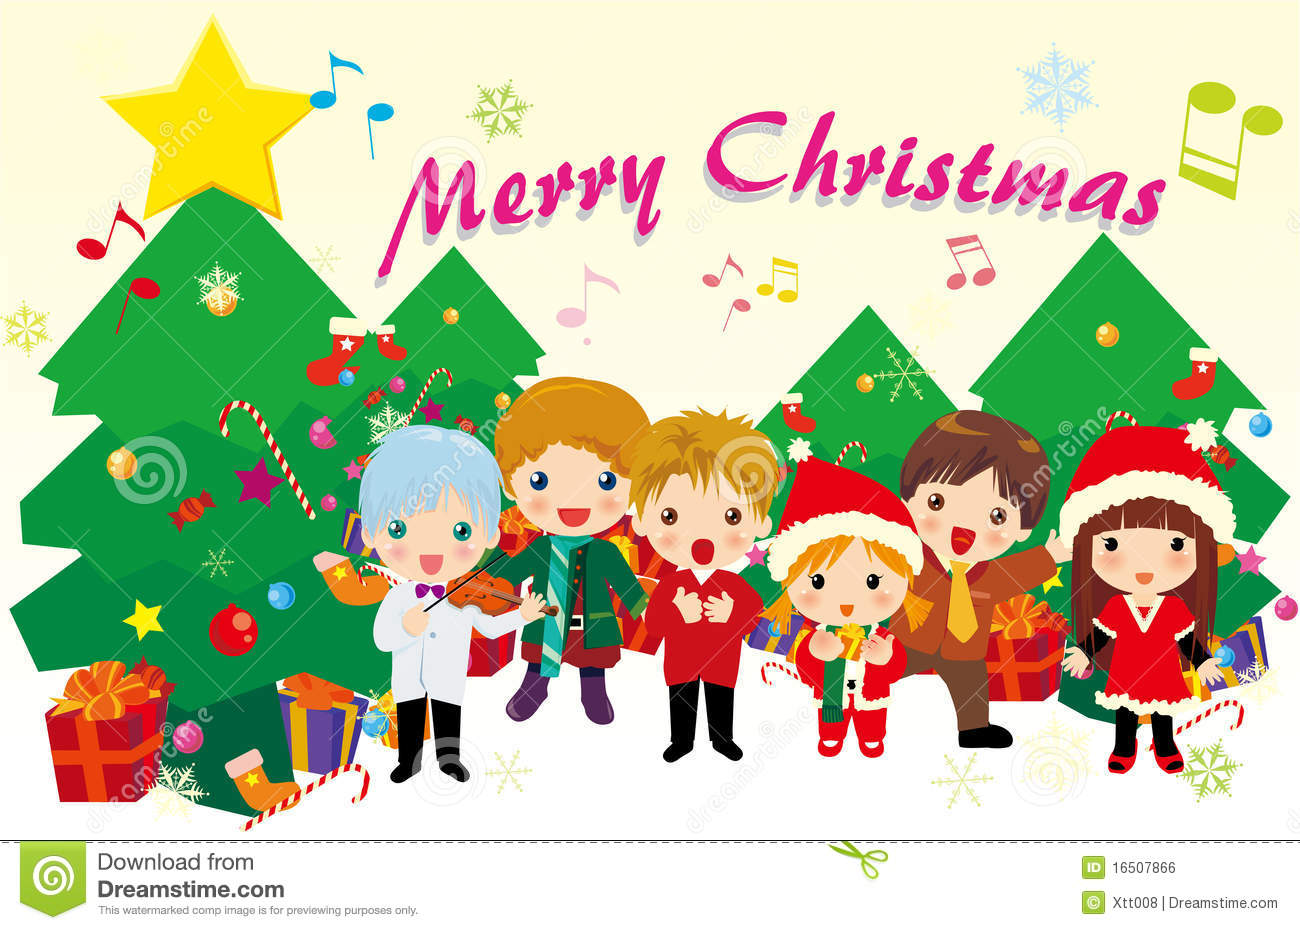 Christmas carols stock vector. Illustration of song, cute - 16507866